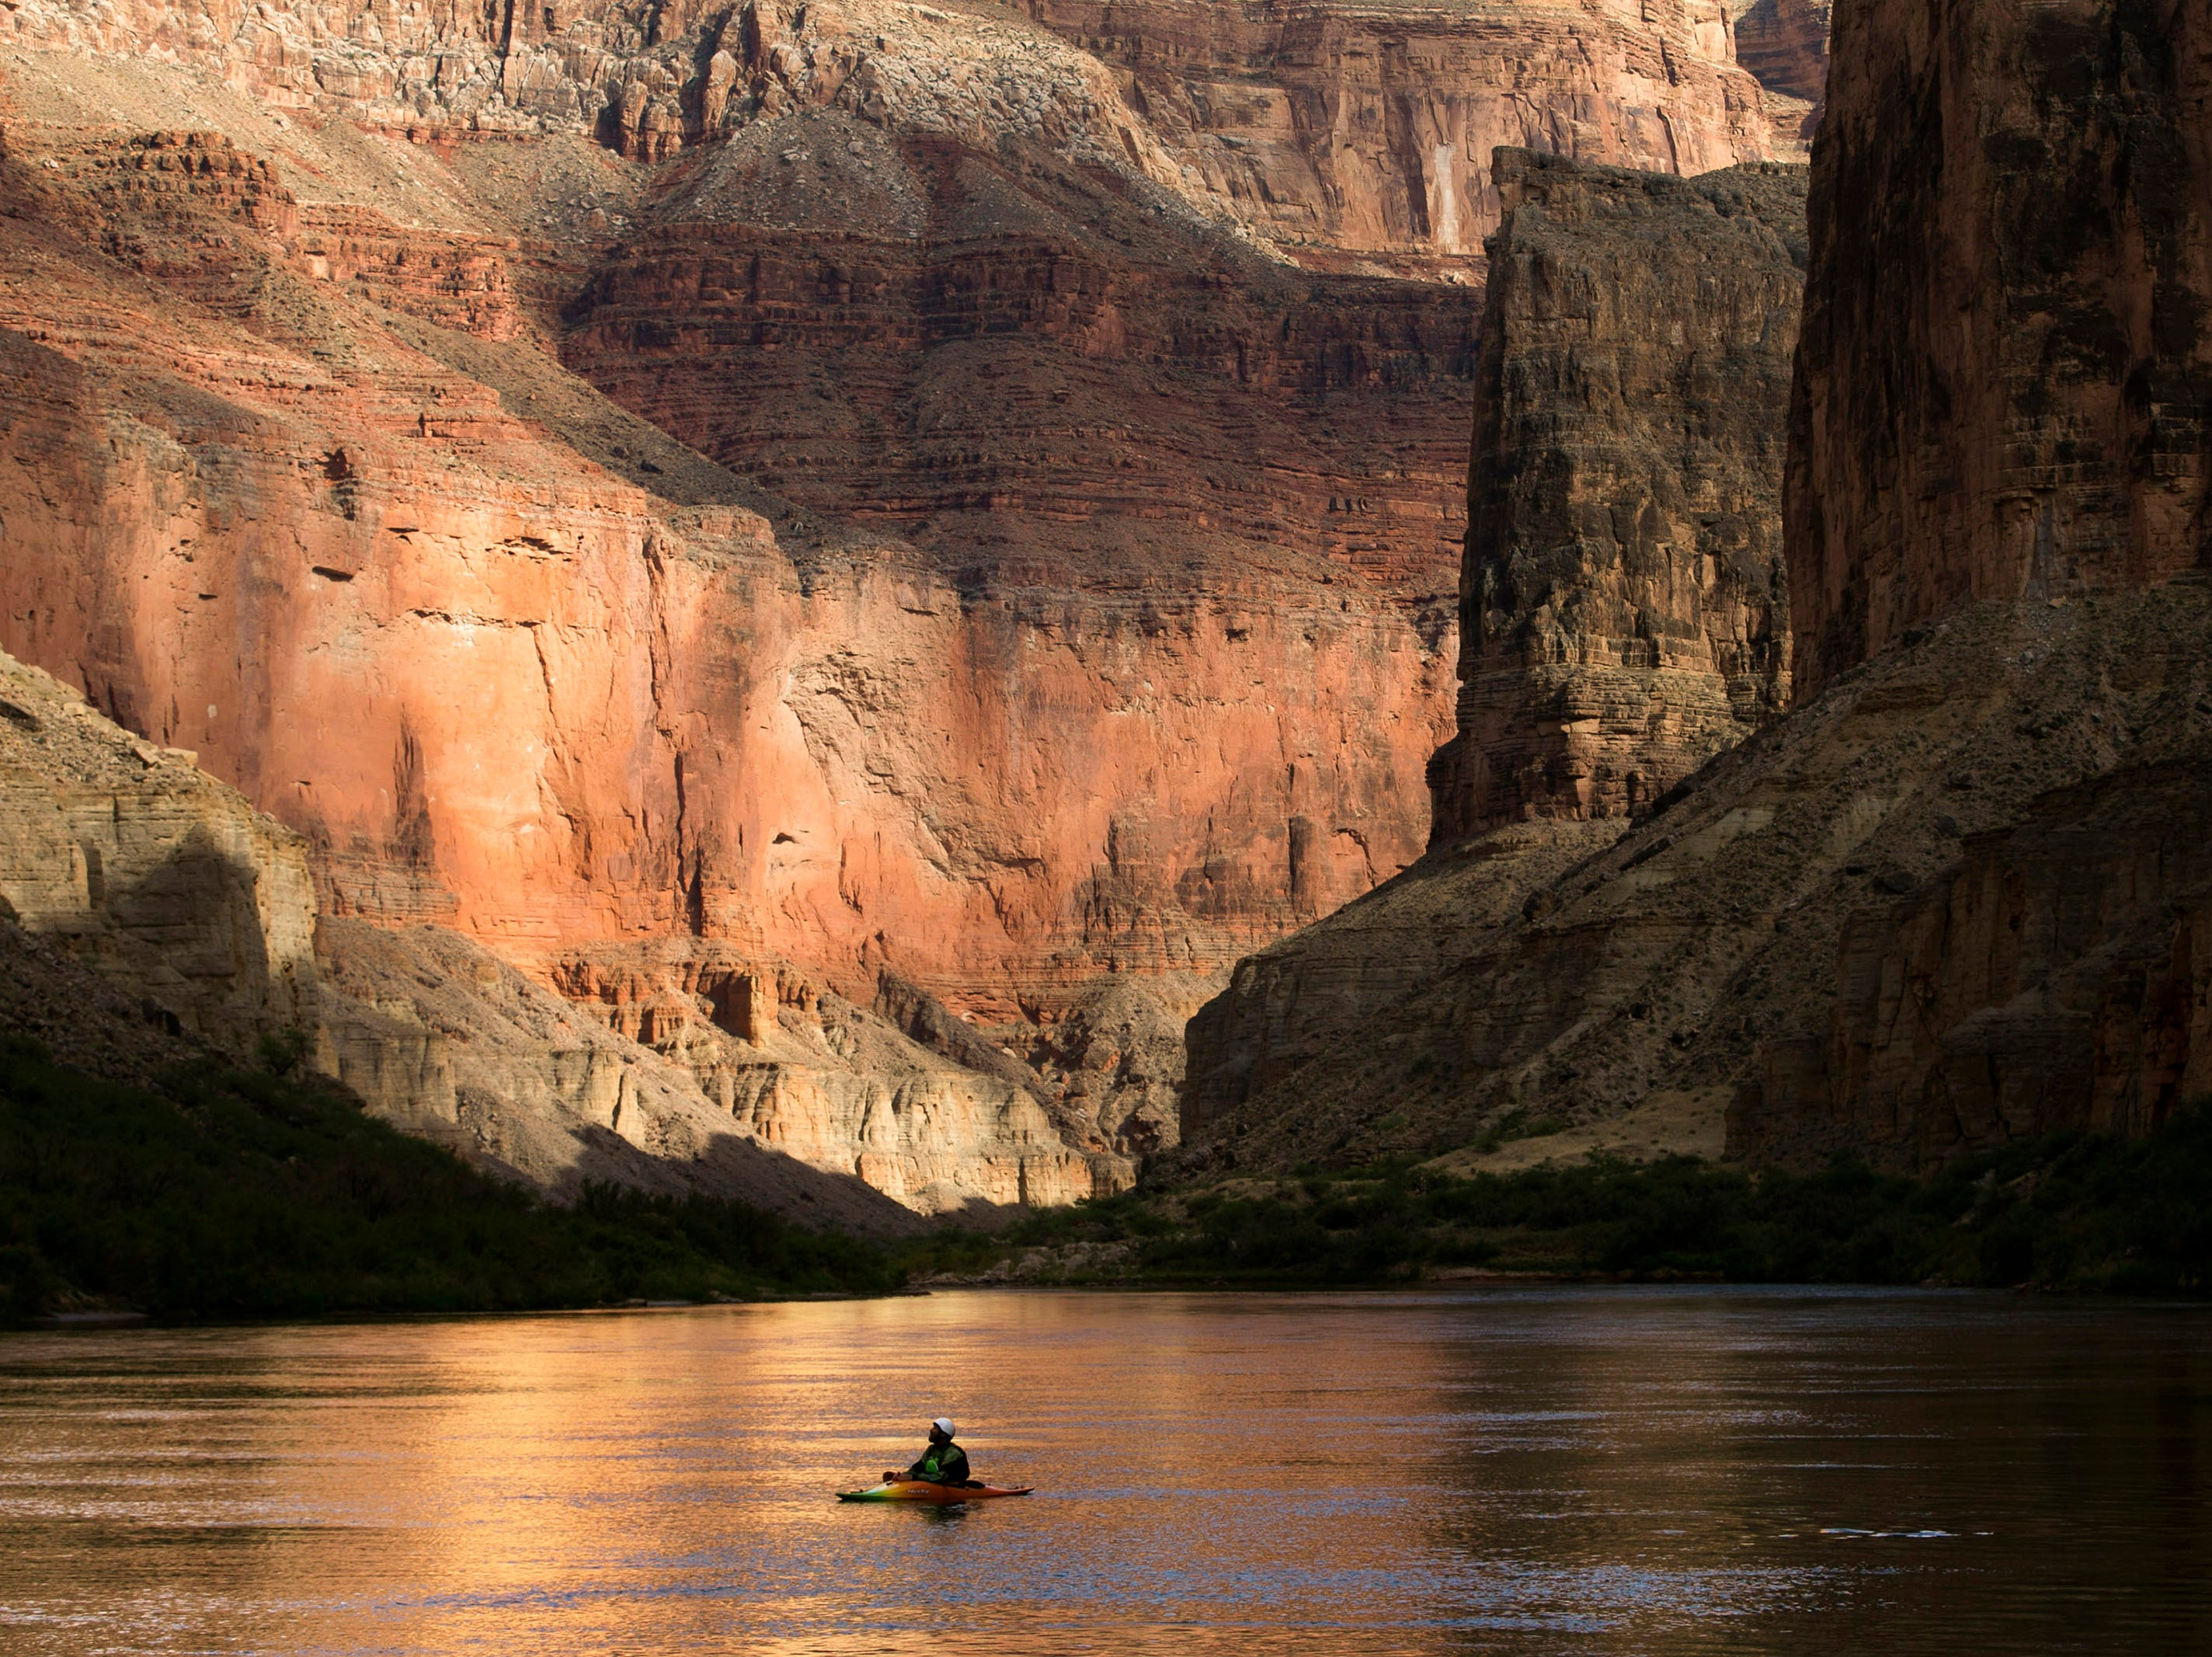 Ezra Jones takes in the canyon walls from his kayak on the Colorado River in Grand Canyon National Park on May 19, 2018.